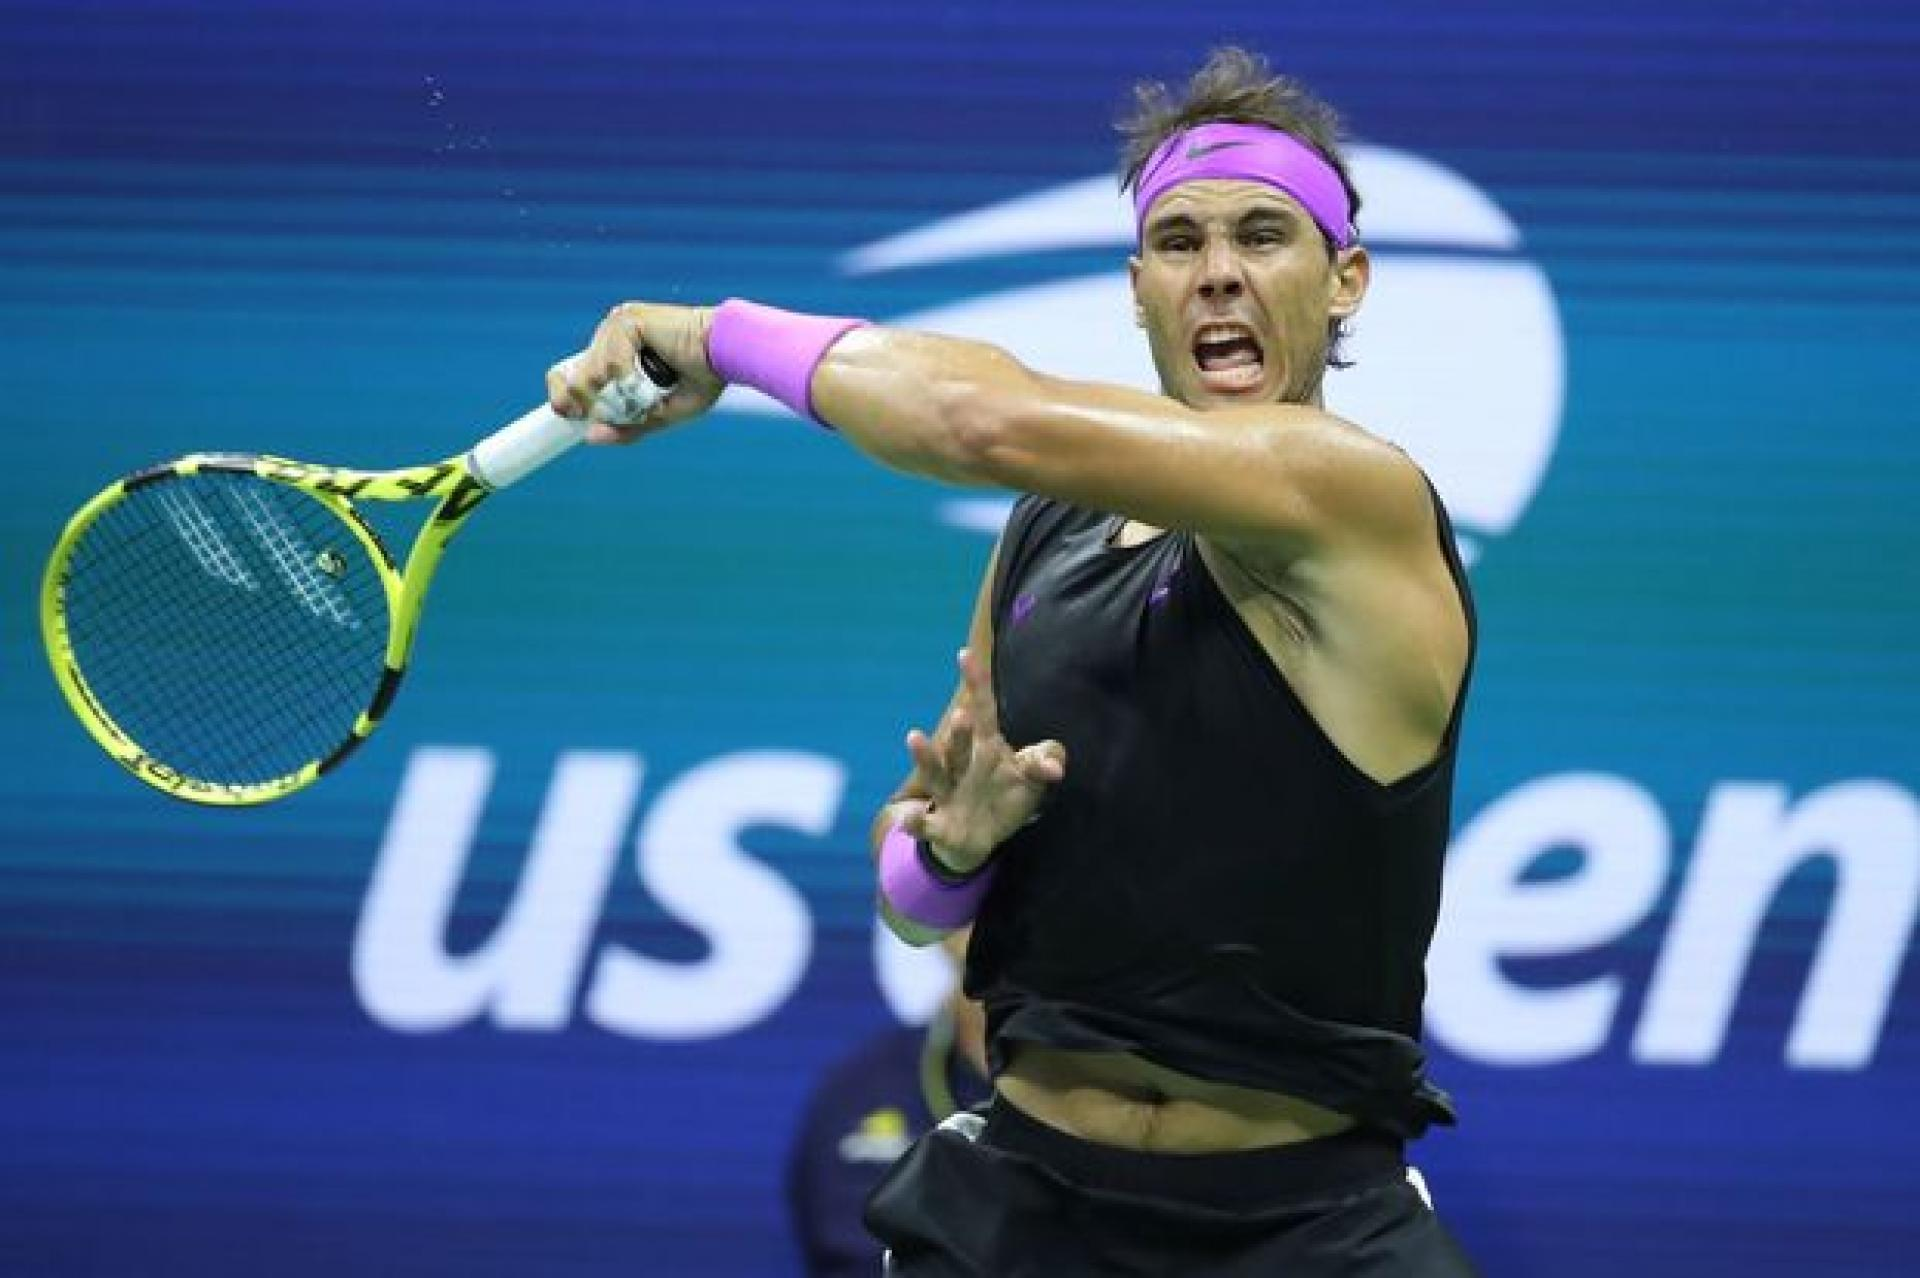 Rafael Nadal Leads ATP Players When Breaking Serve from Deuce